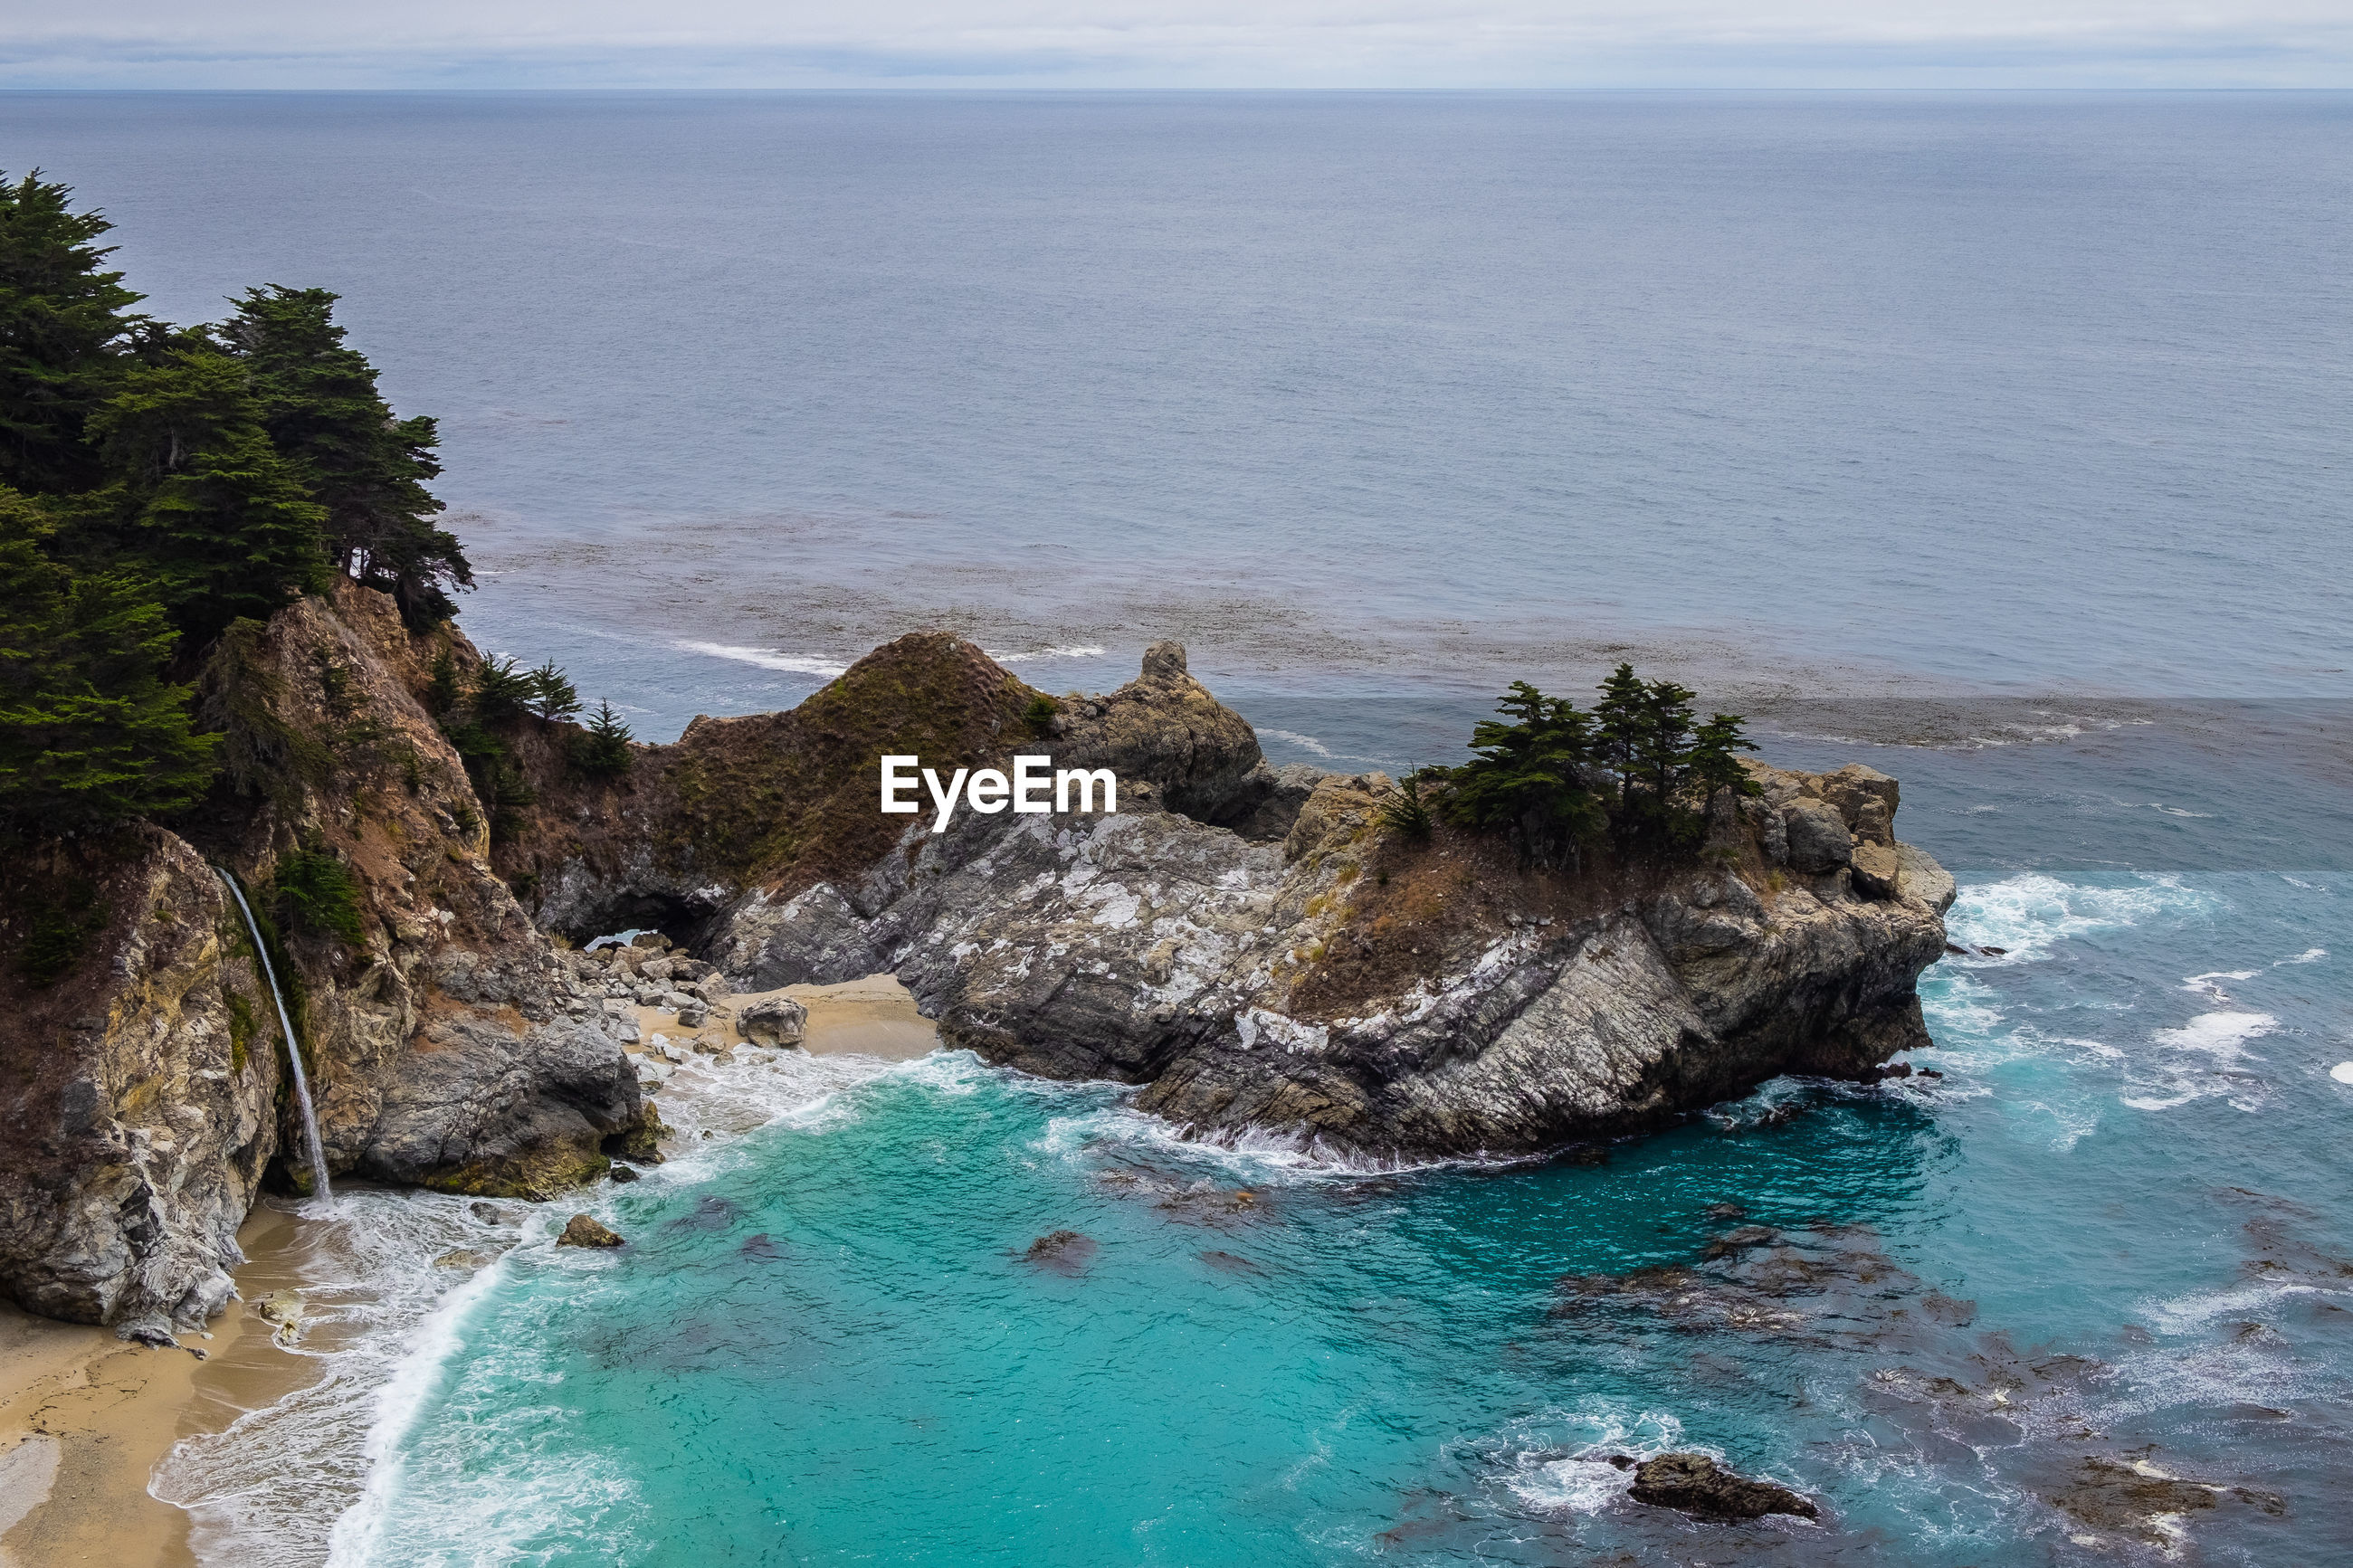 HIGH ANGLE VIEW OF ROCKS ON SEA AGAINST SKY